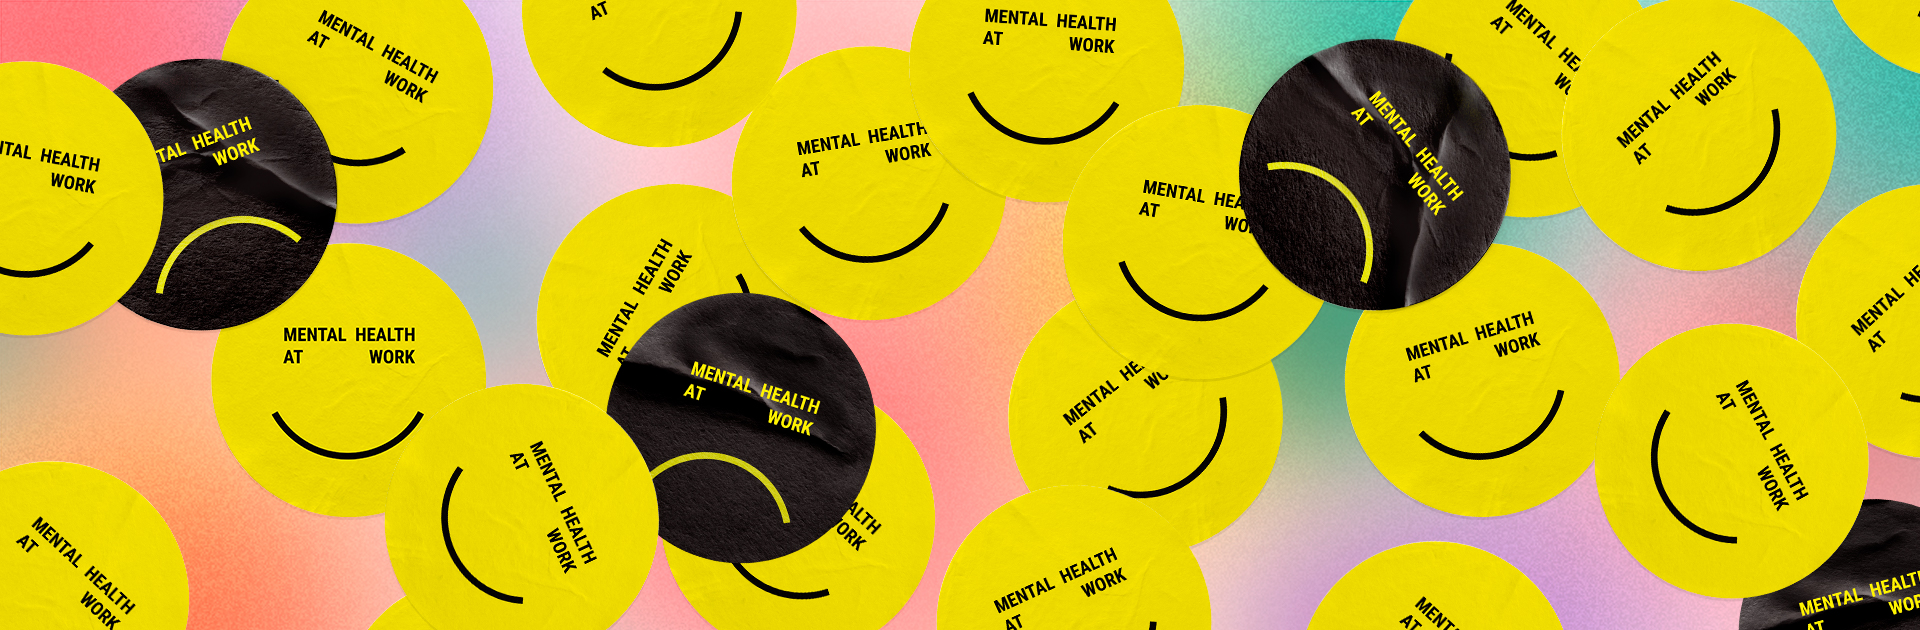 HR NEWS   Mental Health in the Workplace